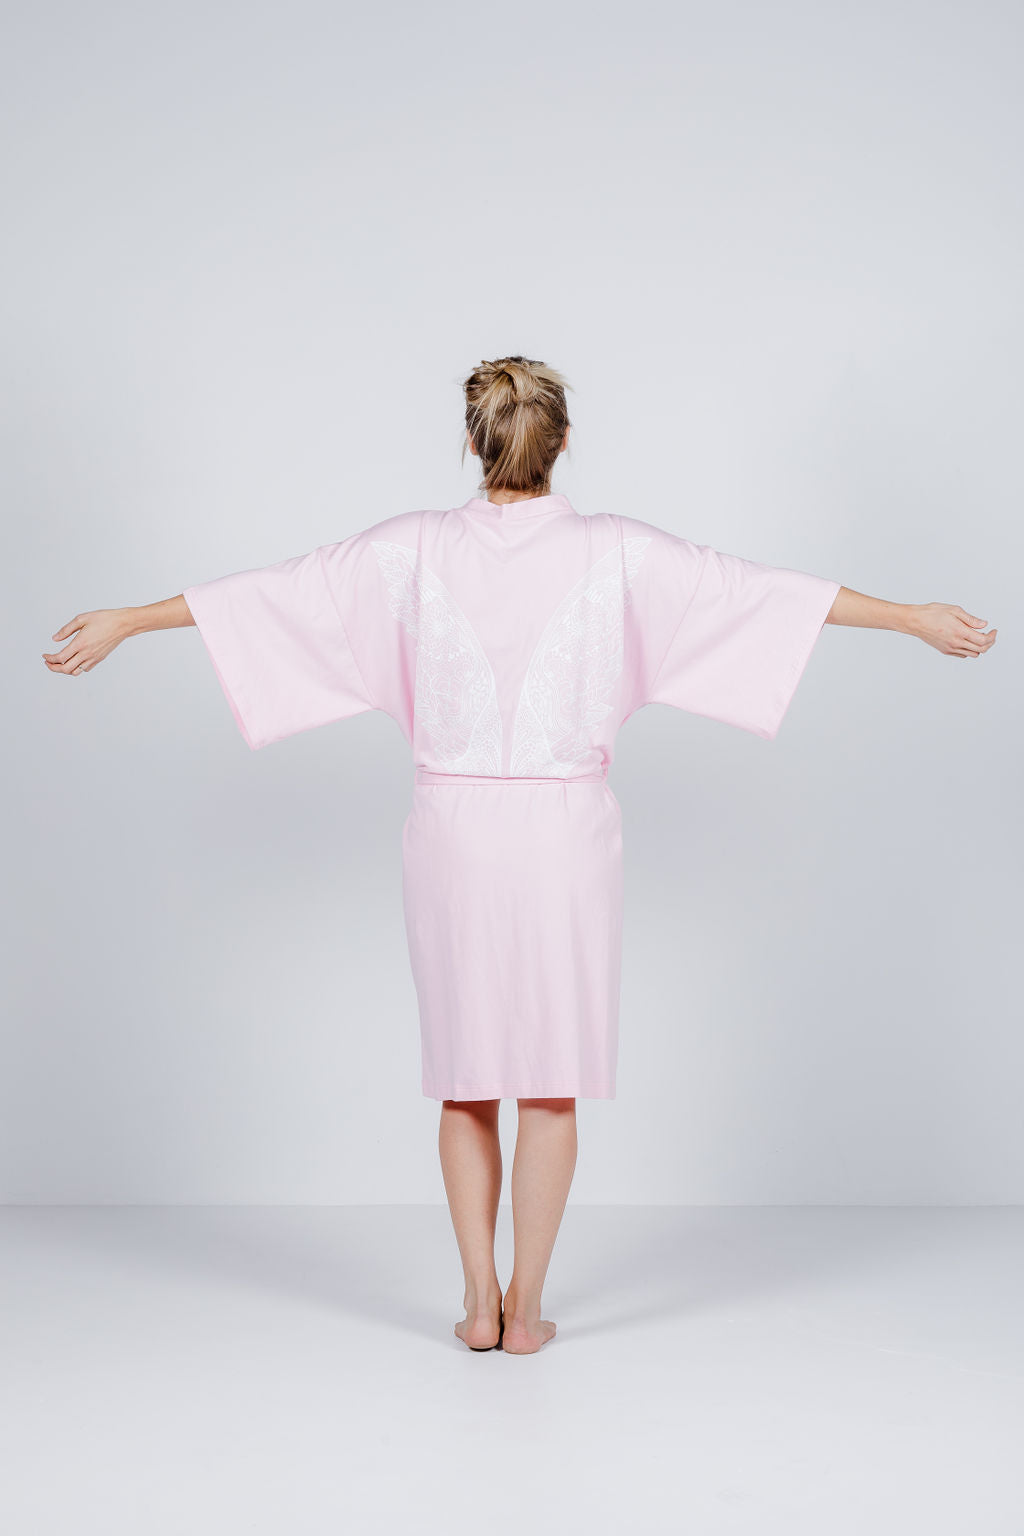 ROBE - Pink with White Wings